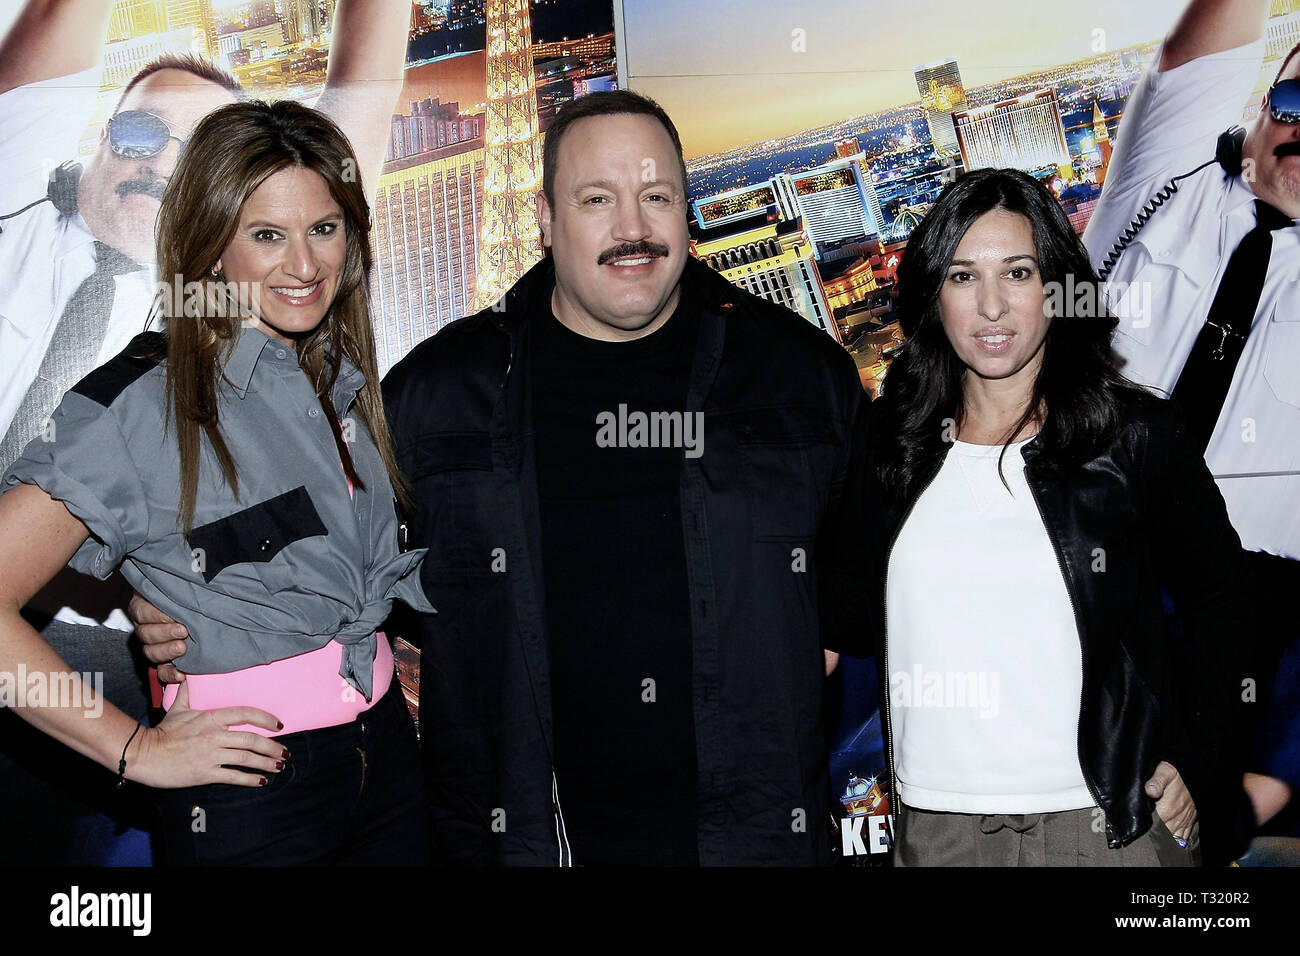 New York, USA. 13 Apr, 2015.  Media personalities, Denise Albert, (L), and, Melissa Musen Gerstein, (R) of The Moms join actor, Kevin James, (C) in a photo at The Moms 'Paul Blart: Mall Cop 2' Screening at AMC Loews Lincoln Square 13 on April 13, 2015 in New York, NY . Credit: Steve Mack/S.D. Mack Pictures/Alamy - Stock Image